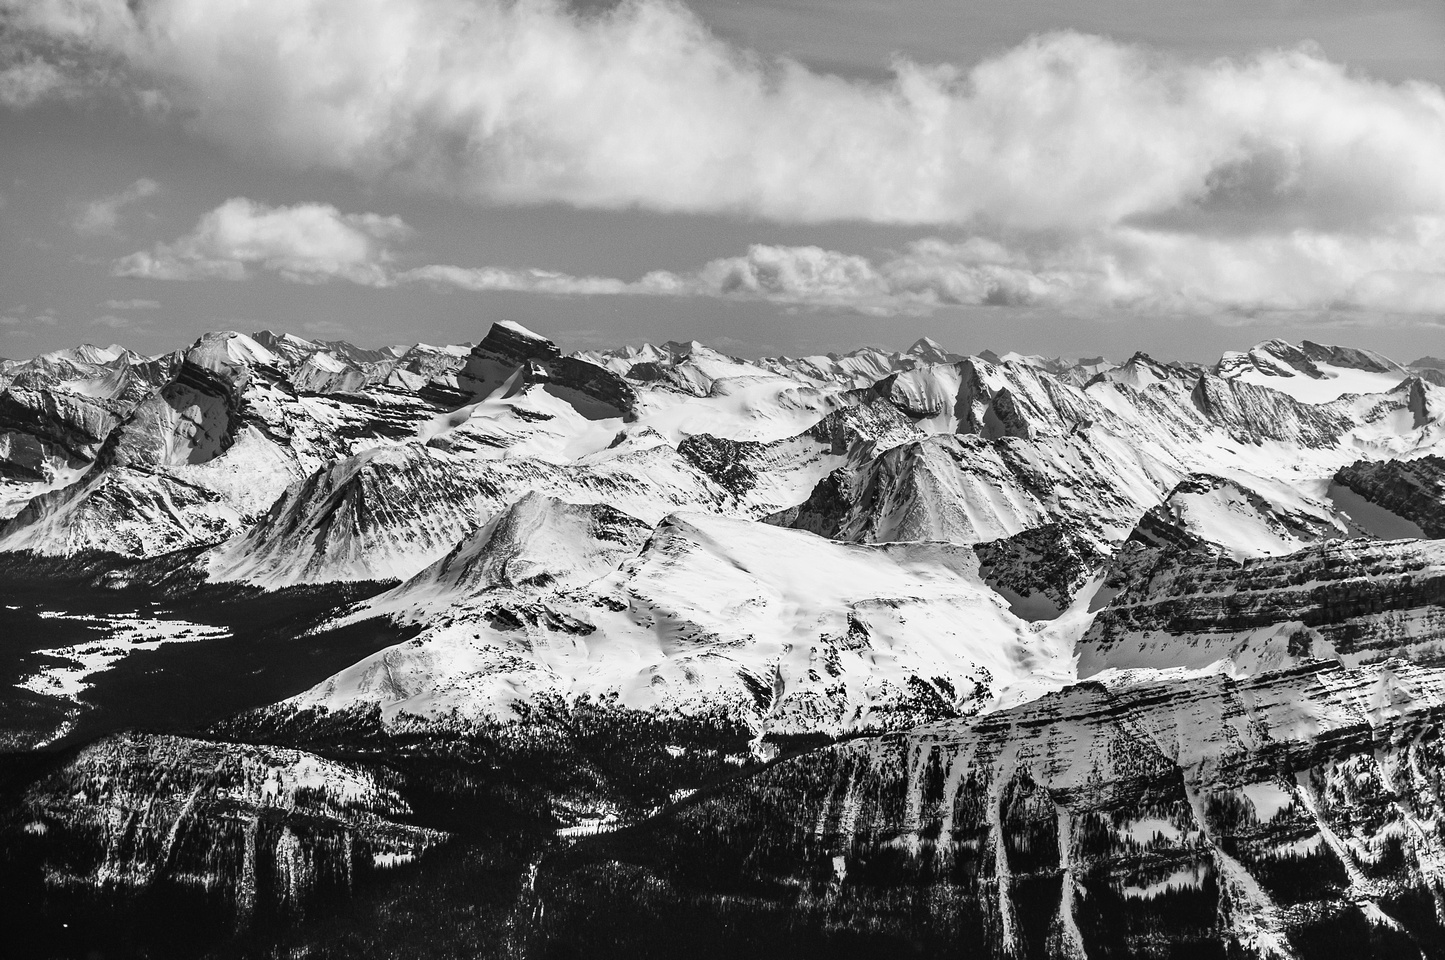 Tele shot towards Skoki with Douglas and St. Bride clearly visible on the left and Skoki, Oyster, Fossil peaks visible.